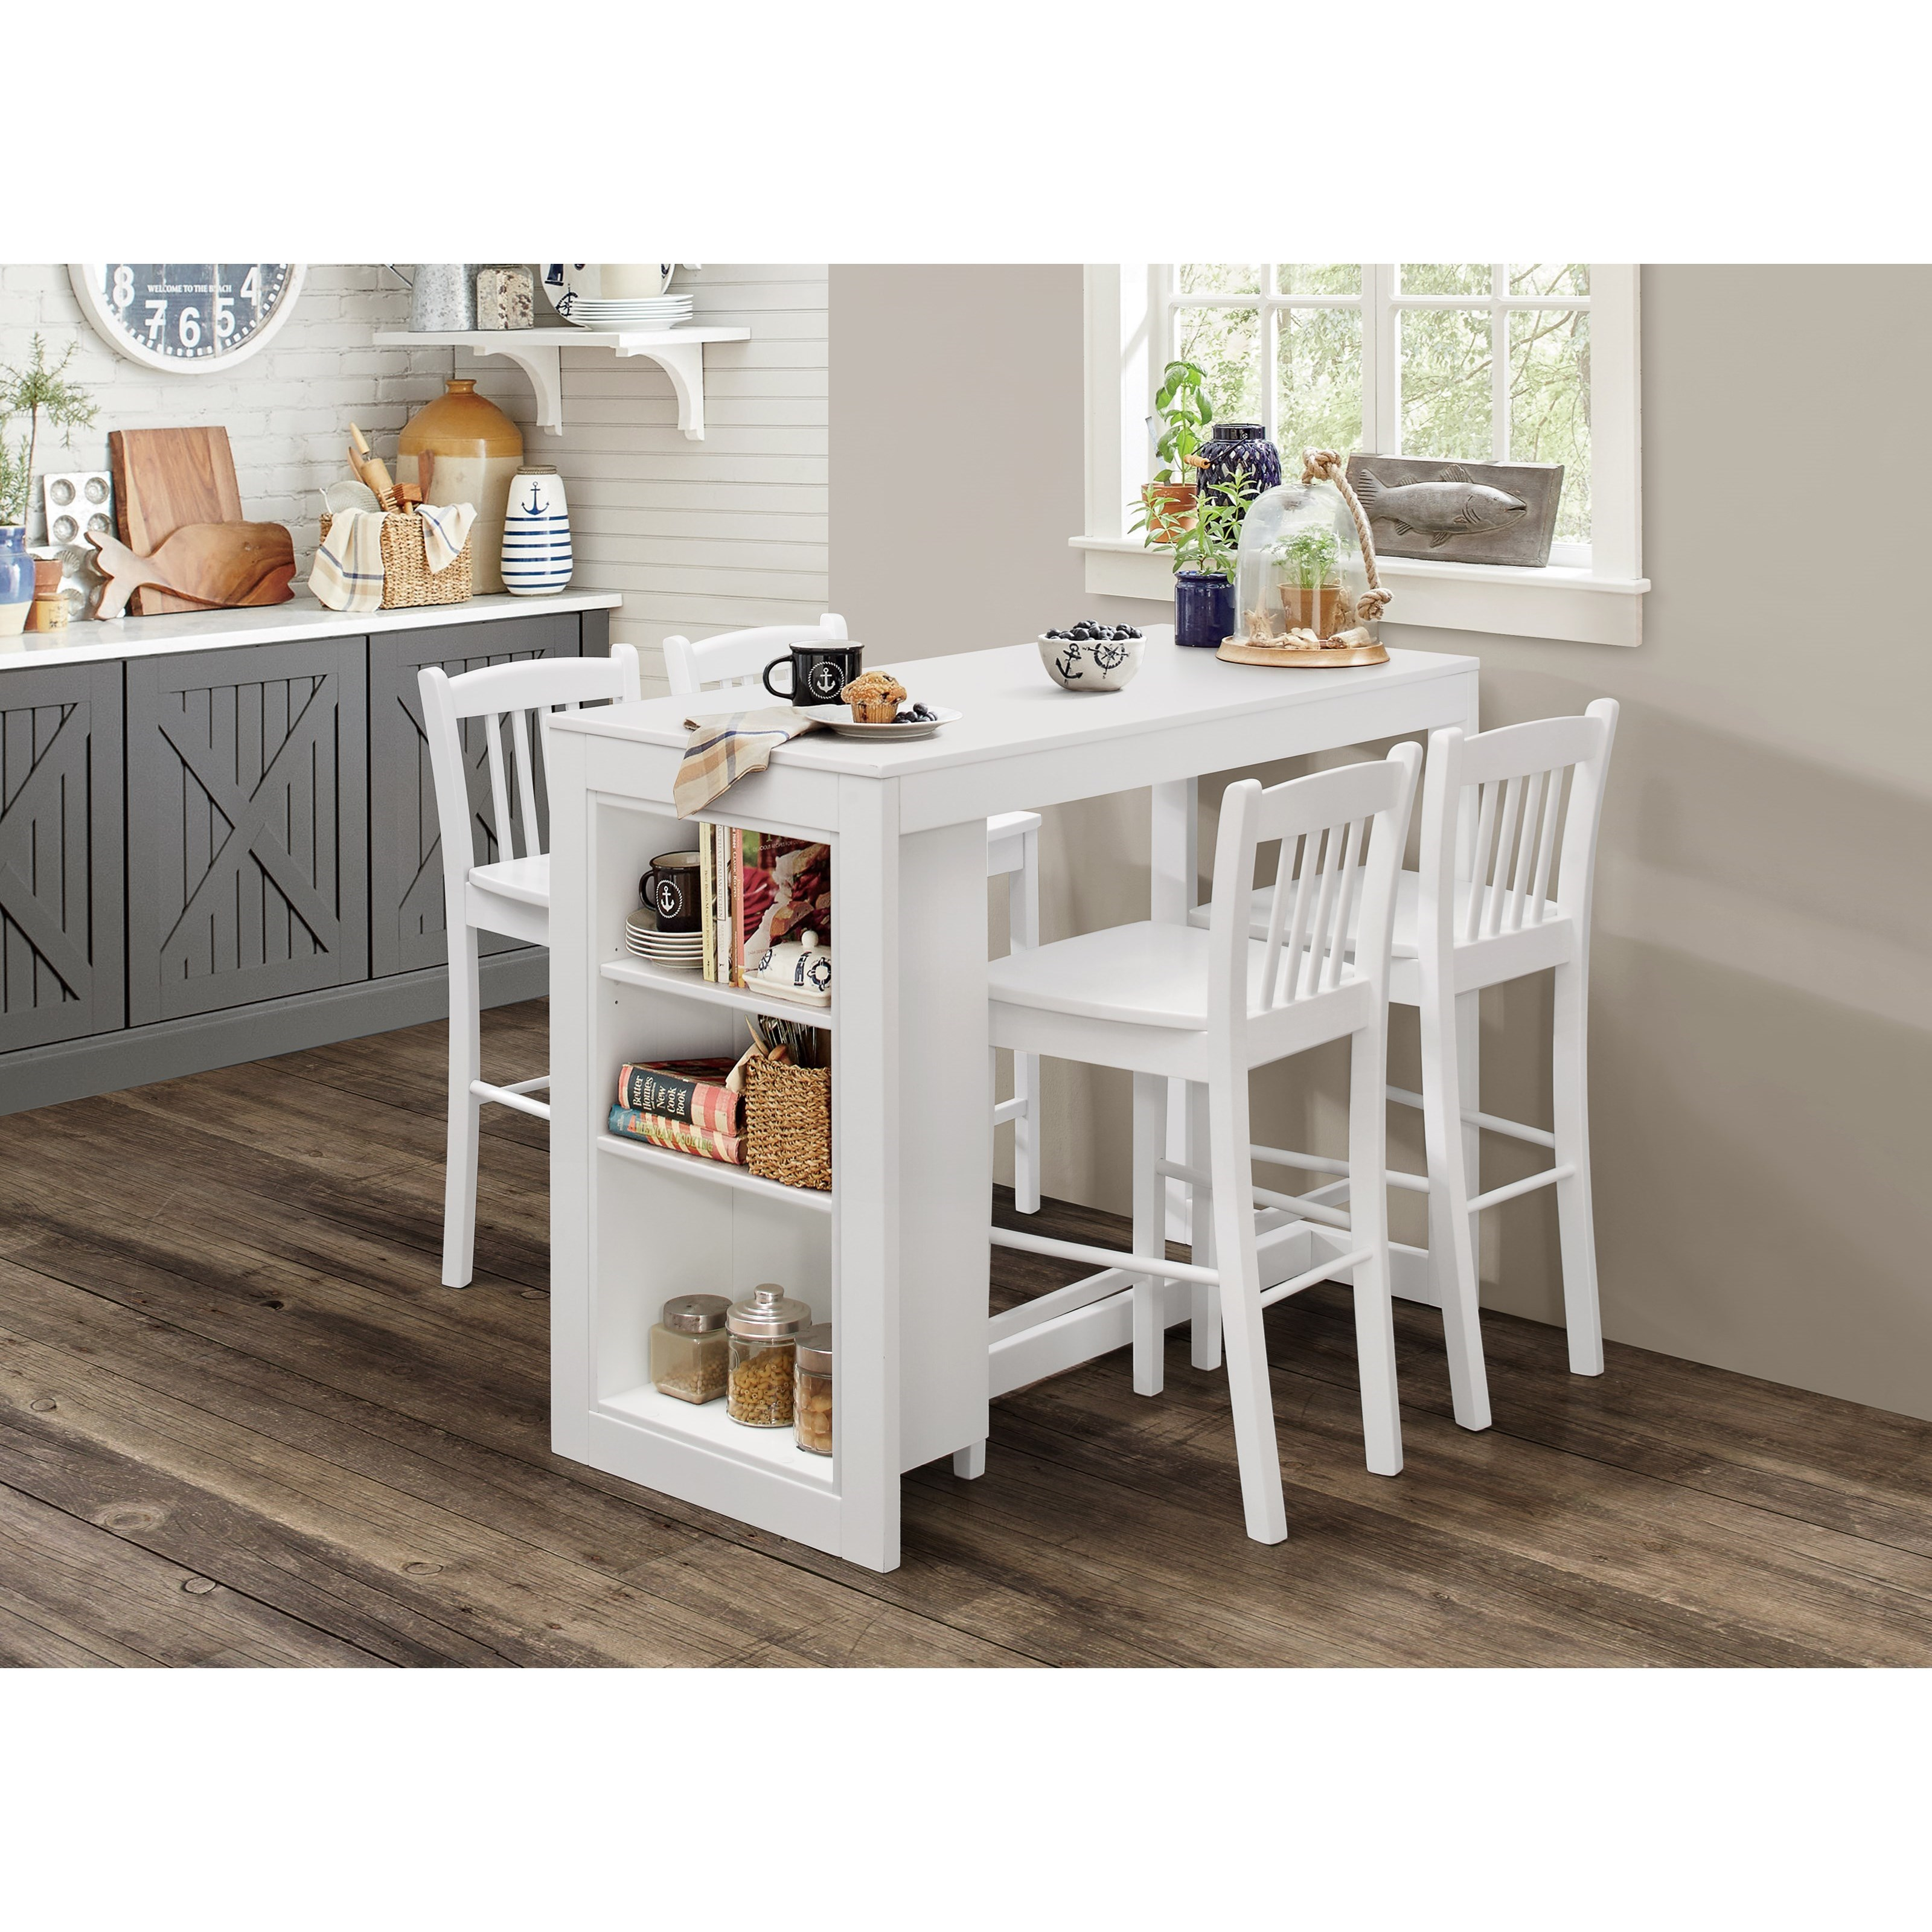 Kitchen Tables Furniture: Jofran Tribeca Counter Height Table With 4 Chairs